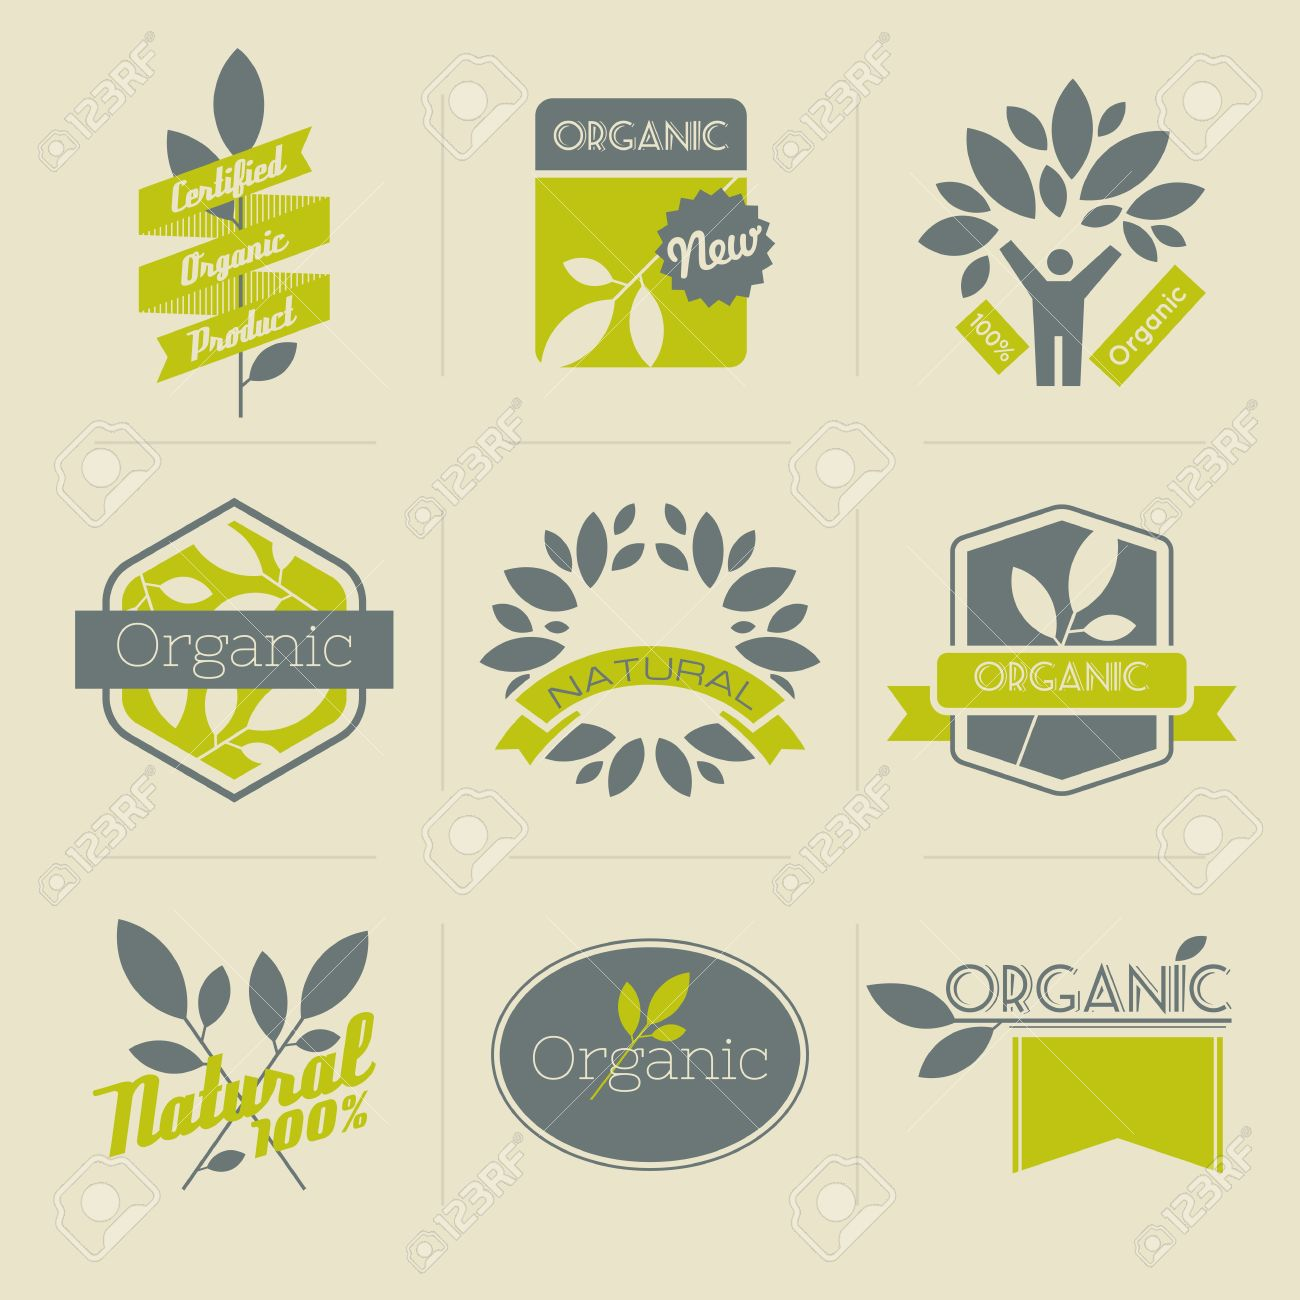 Organic retro labels, badges and other design elements with leaves  Vector illustration Stock Vector - 16441665